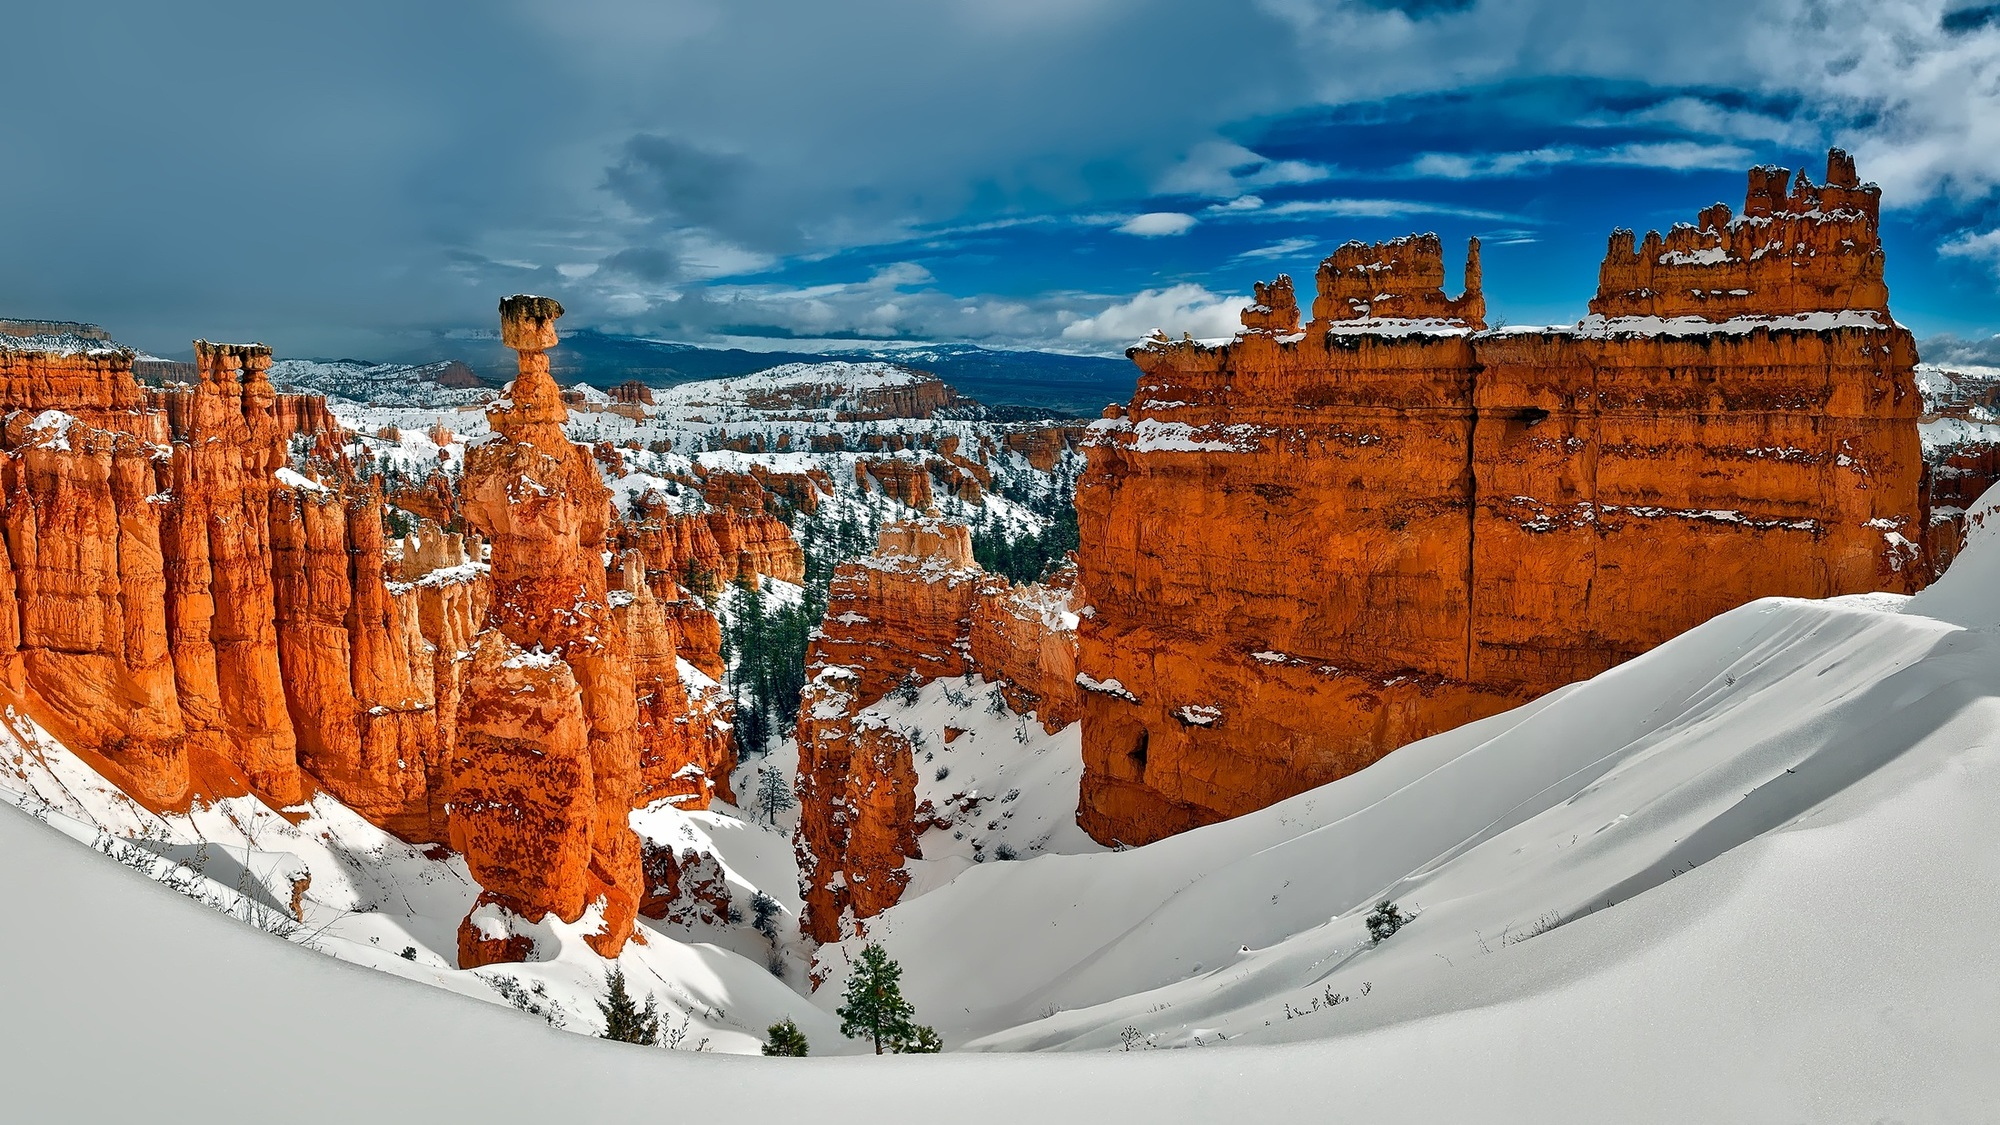 us-Devoyager-P-bryce canyon17